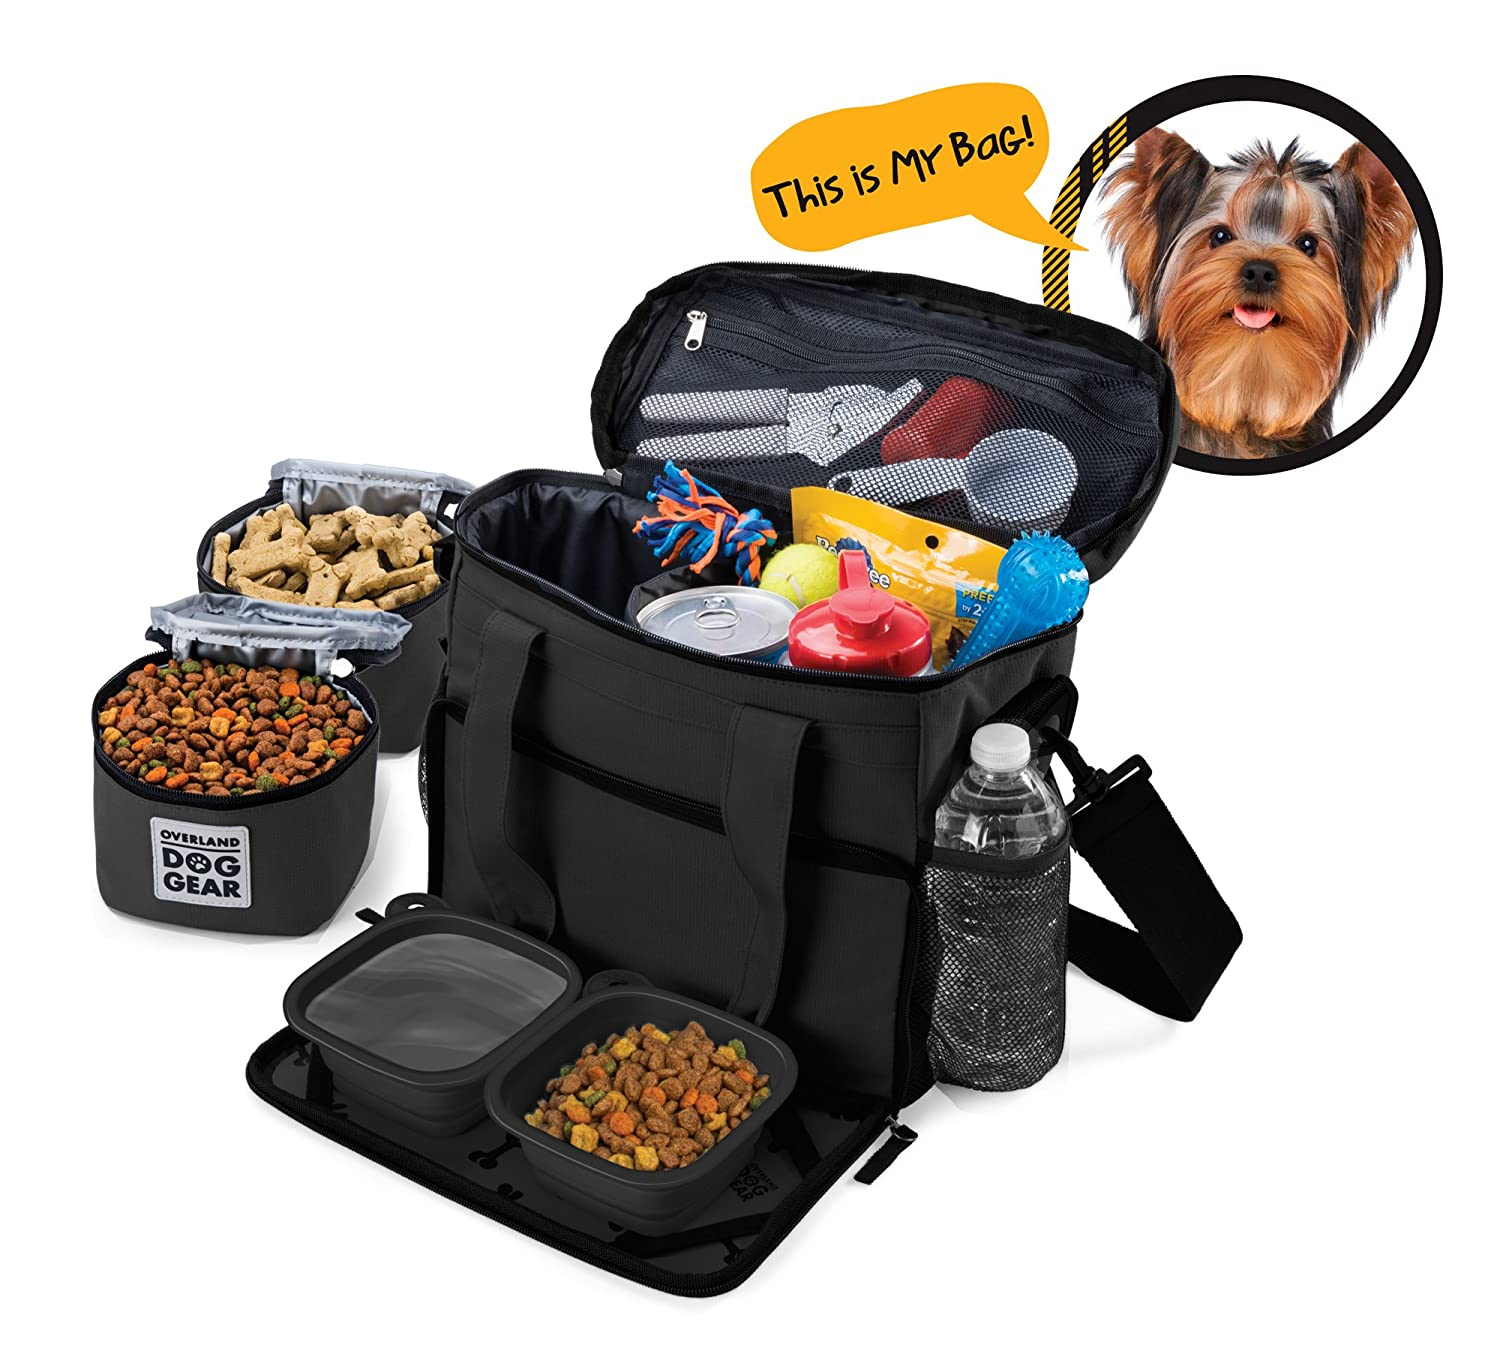 Black Dog Travel Bag Week Away Tote For Small Dogs Includes Bag, 2 Lined Food Carriers, Placemat, and 2 Collapsible Bowls